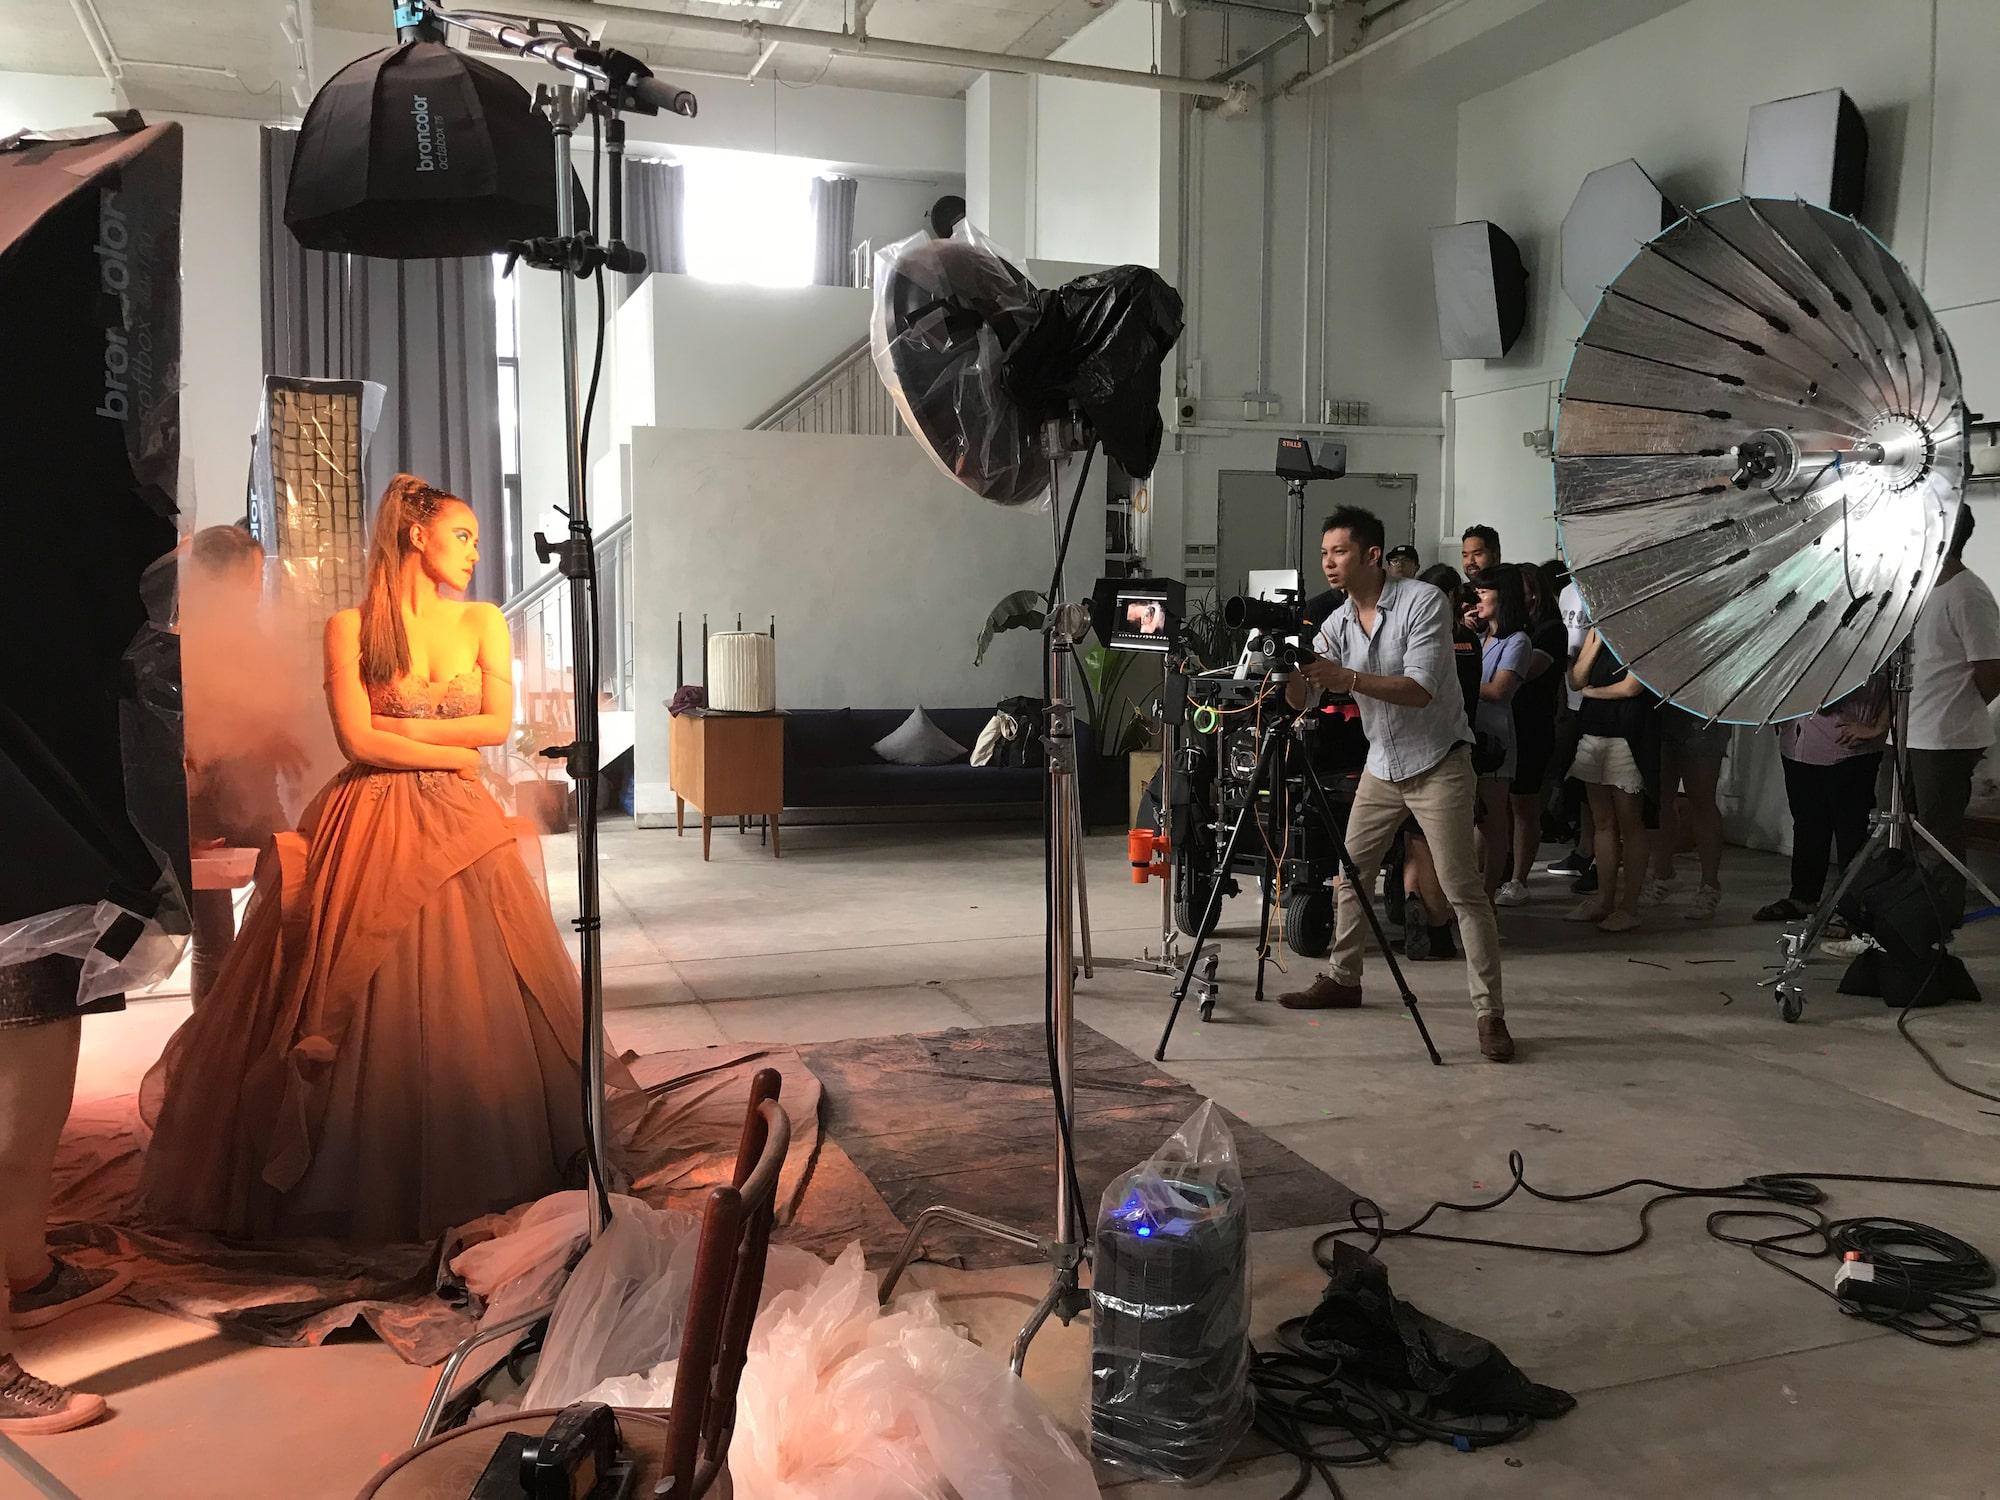 Behind-the-scenes of Nicky Loh's shoot with Sony Alpha 7R IV. It supports remote operation for a more efficient workflow.